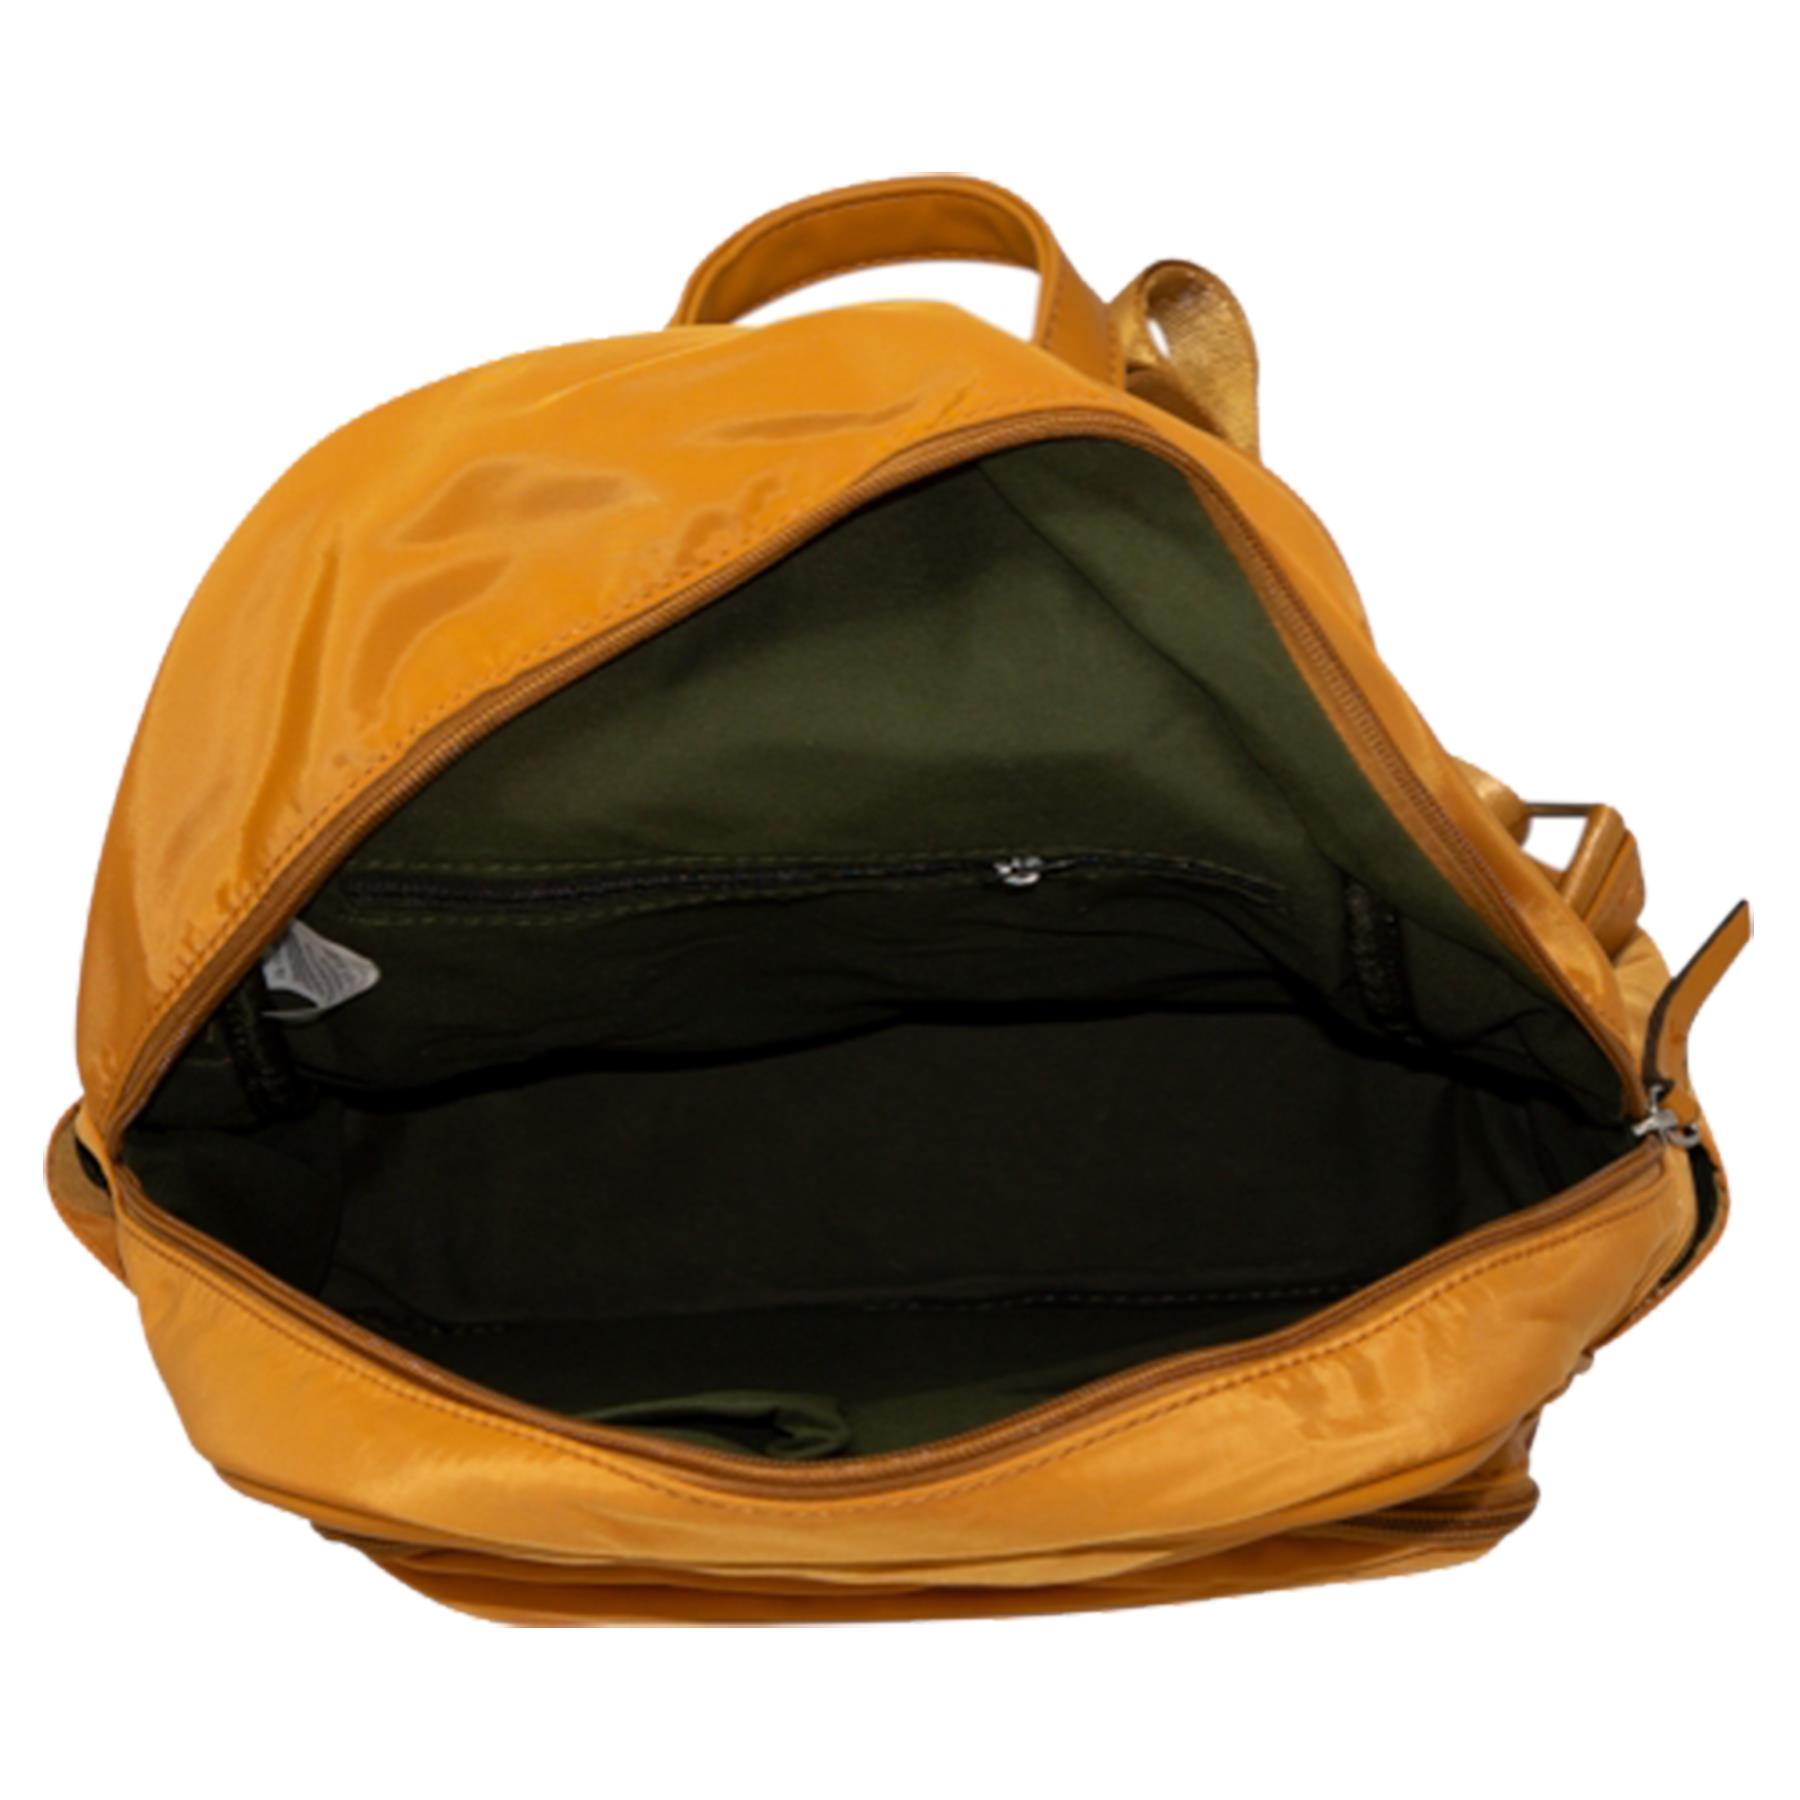 New-Unisex-Plain-Nylon-Showerproof-School-College-Backpack-Rucksack thumbnail 35